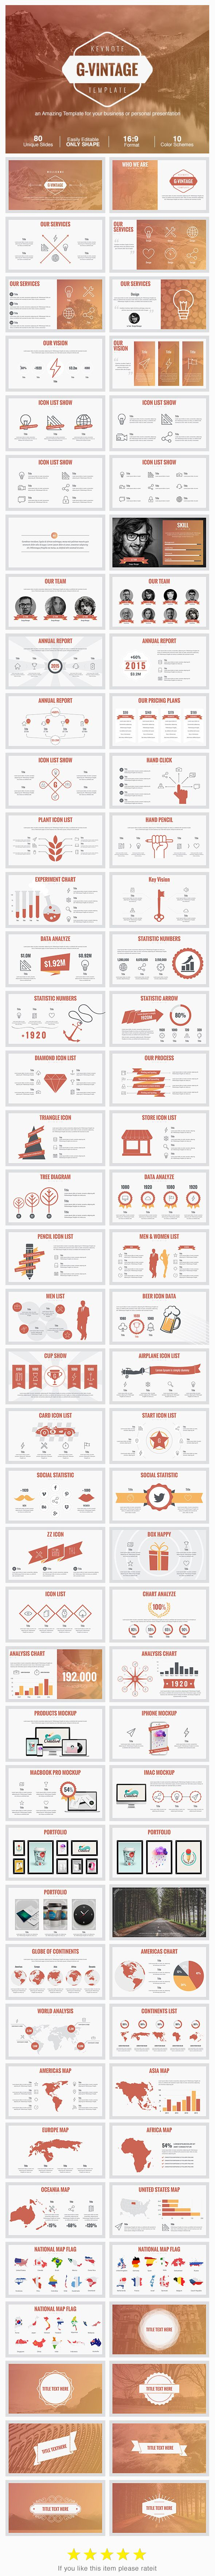 G-Vintage Keynote Presentation Template #design #slides Download: http://graphicriver.net/item/gvintage-presentation-/13647376?ref=ksioks